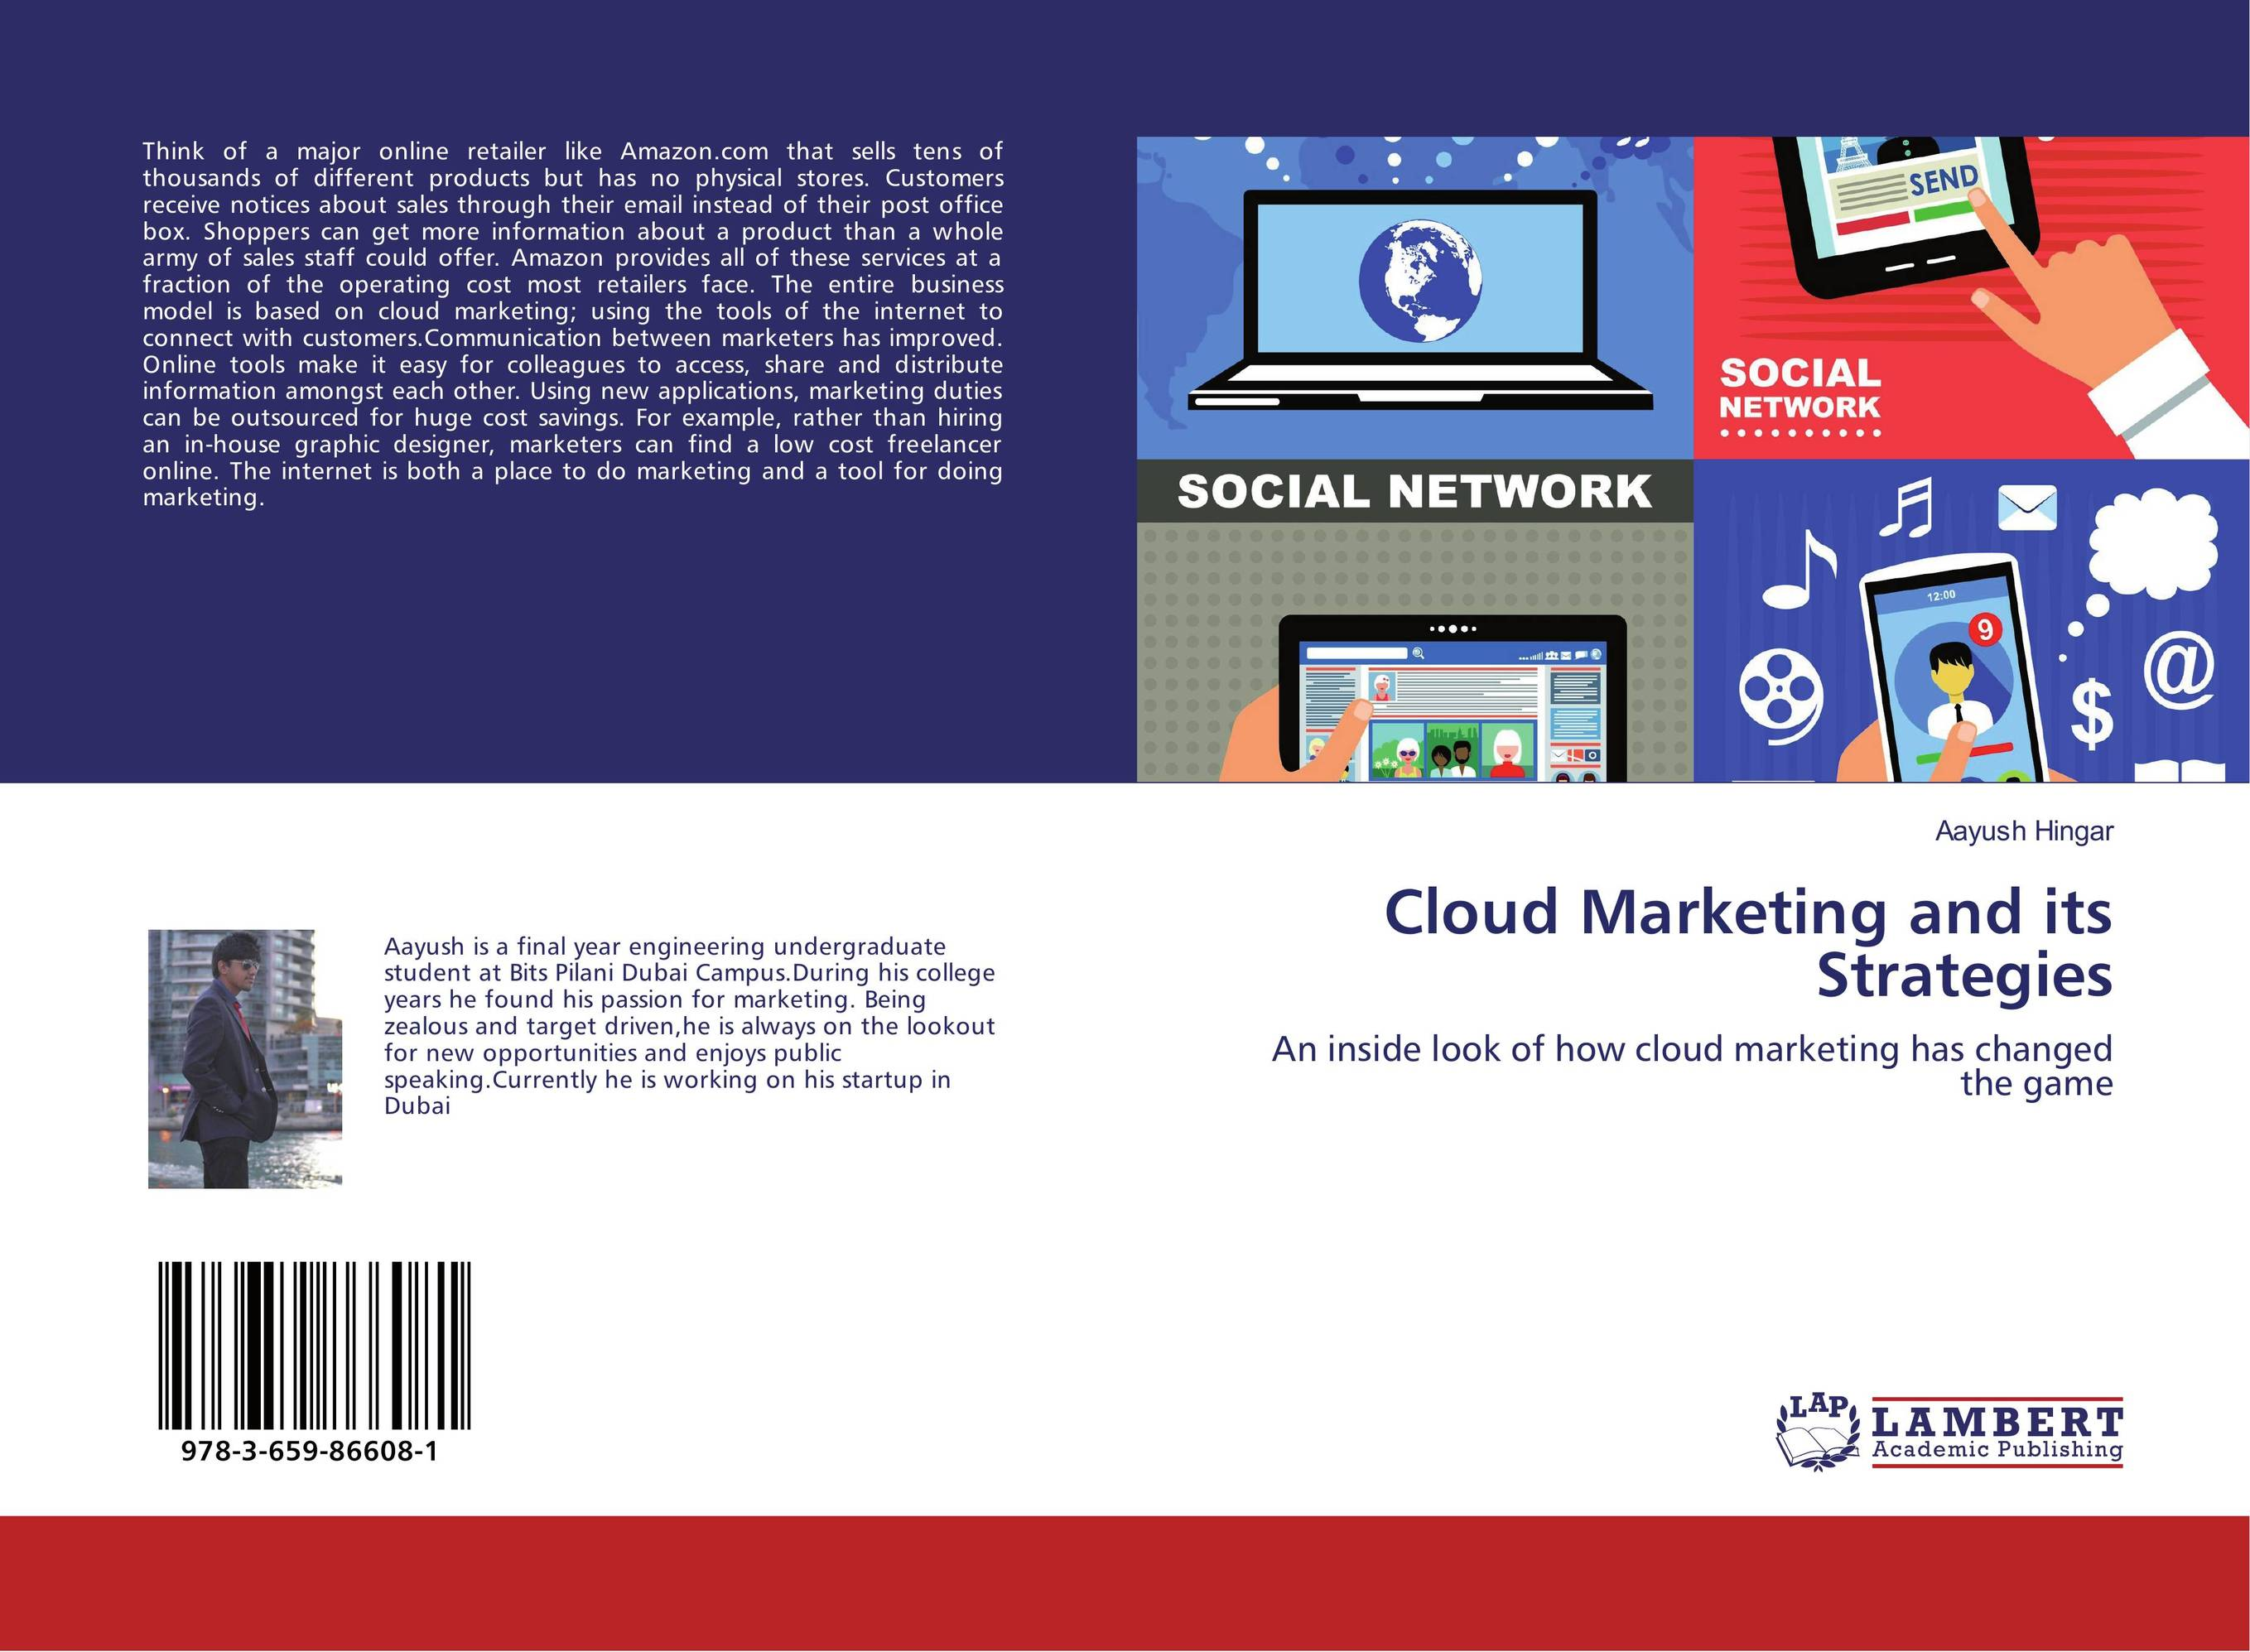 Cloud Marketing and its Strategies